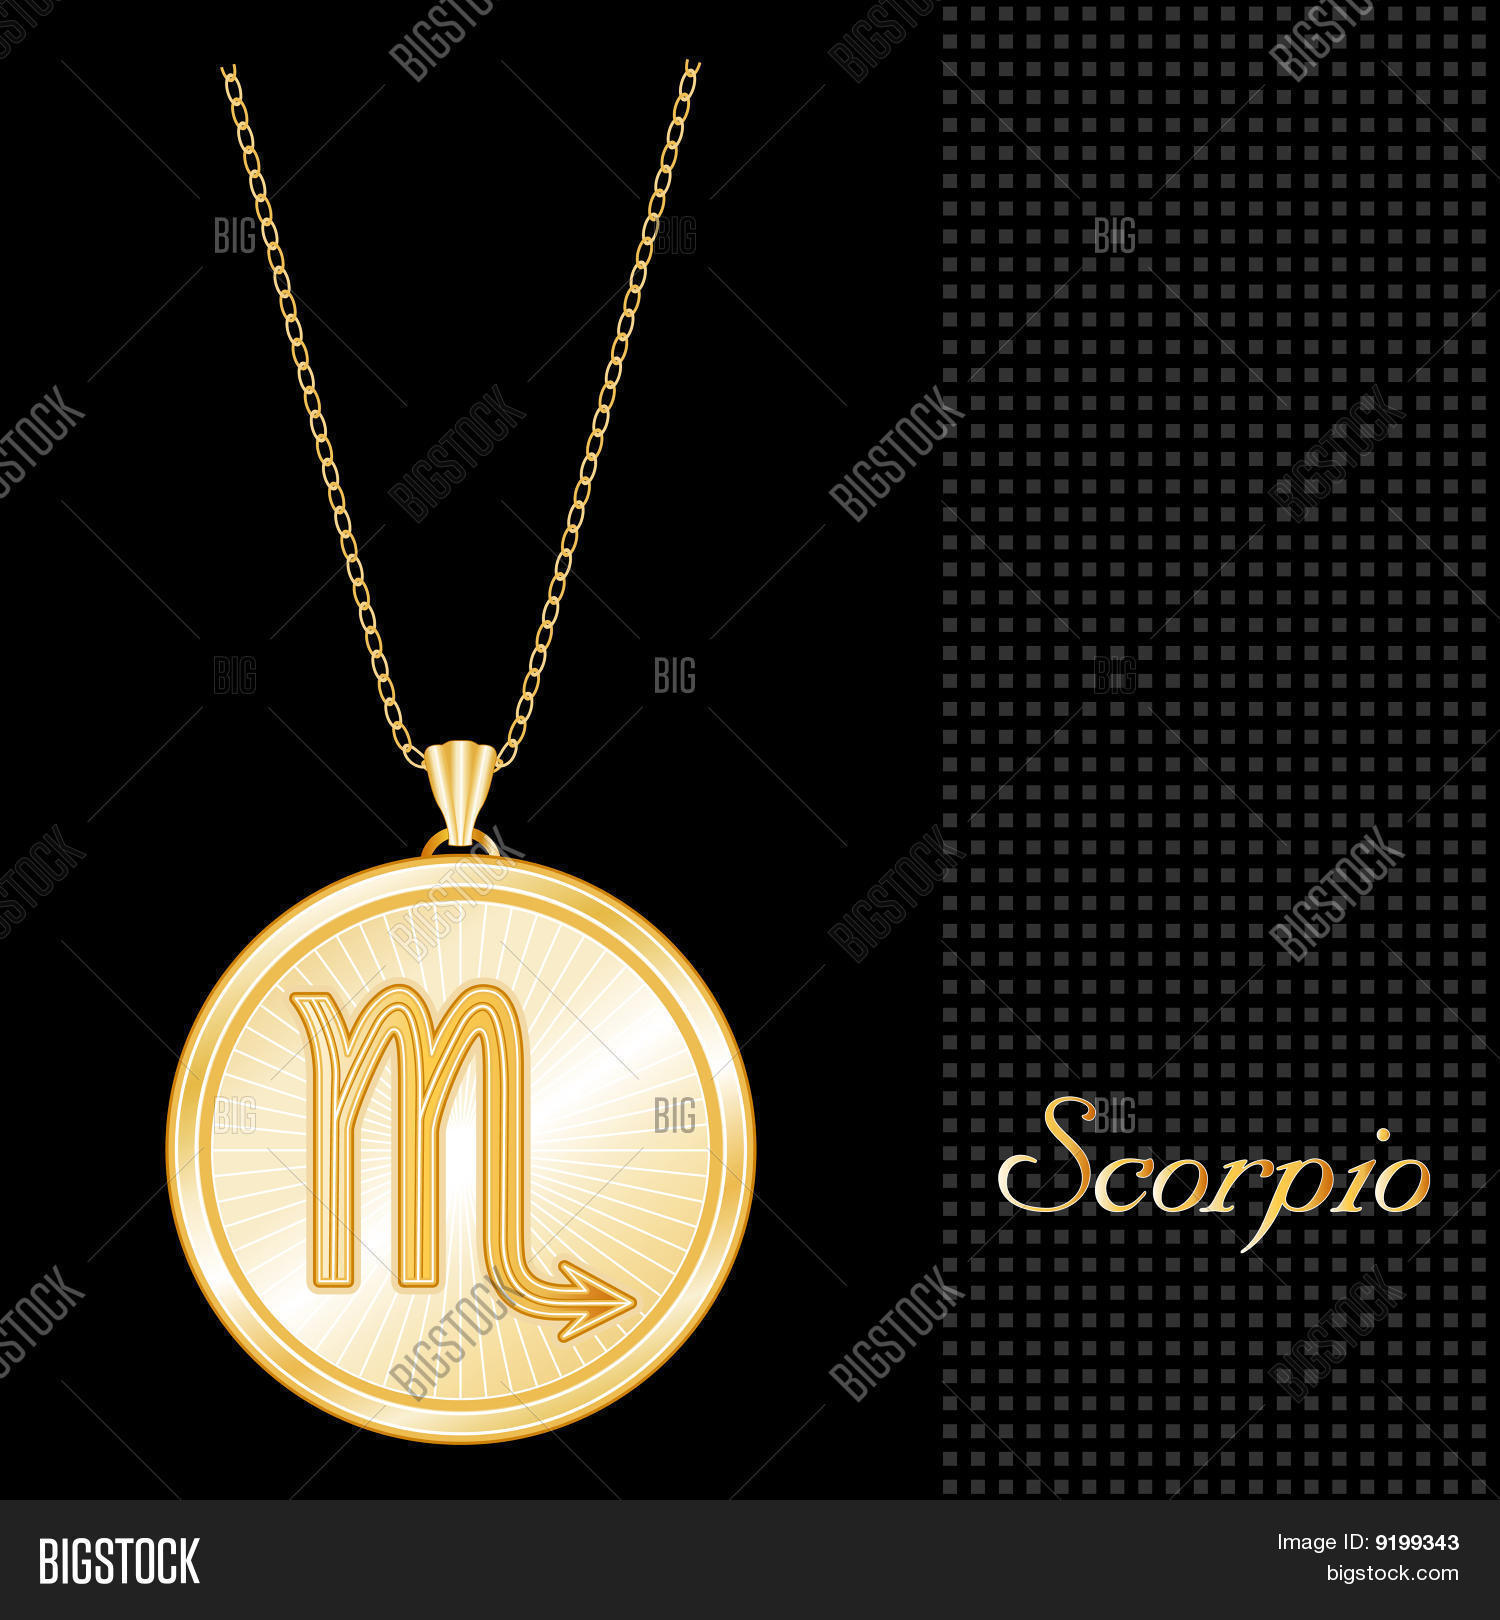 silver p scorpio vincze chain s zodiac medallion by products on pendant large